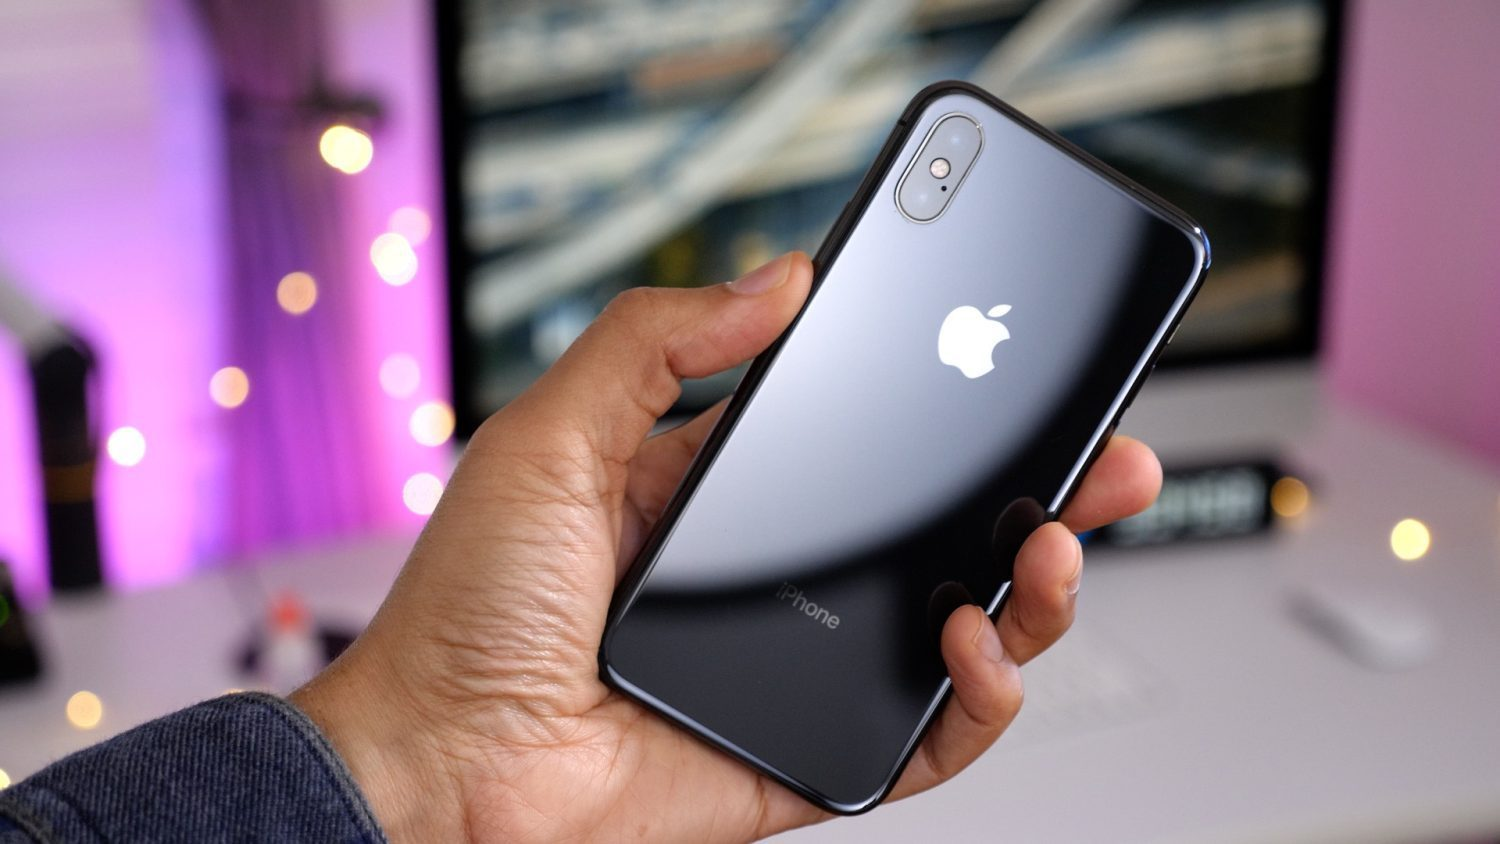 iPhone X vs iPhone 11 comparison: Should you upgrade?